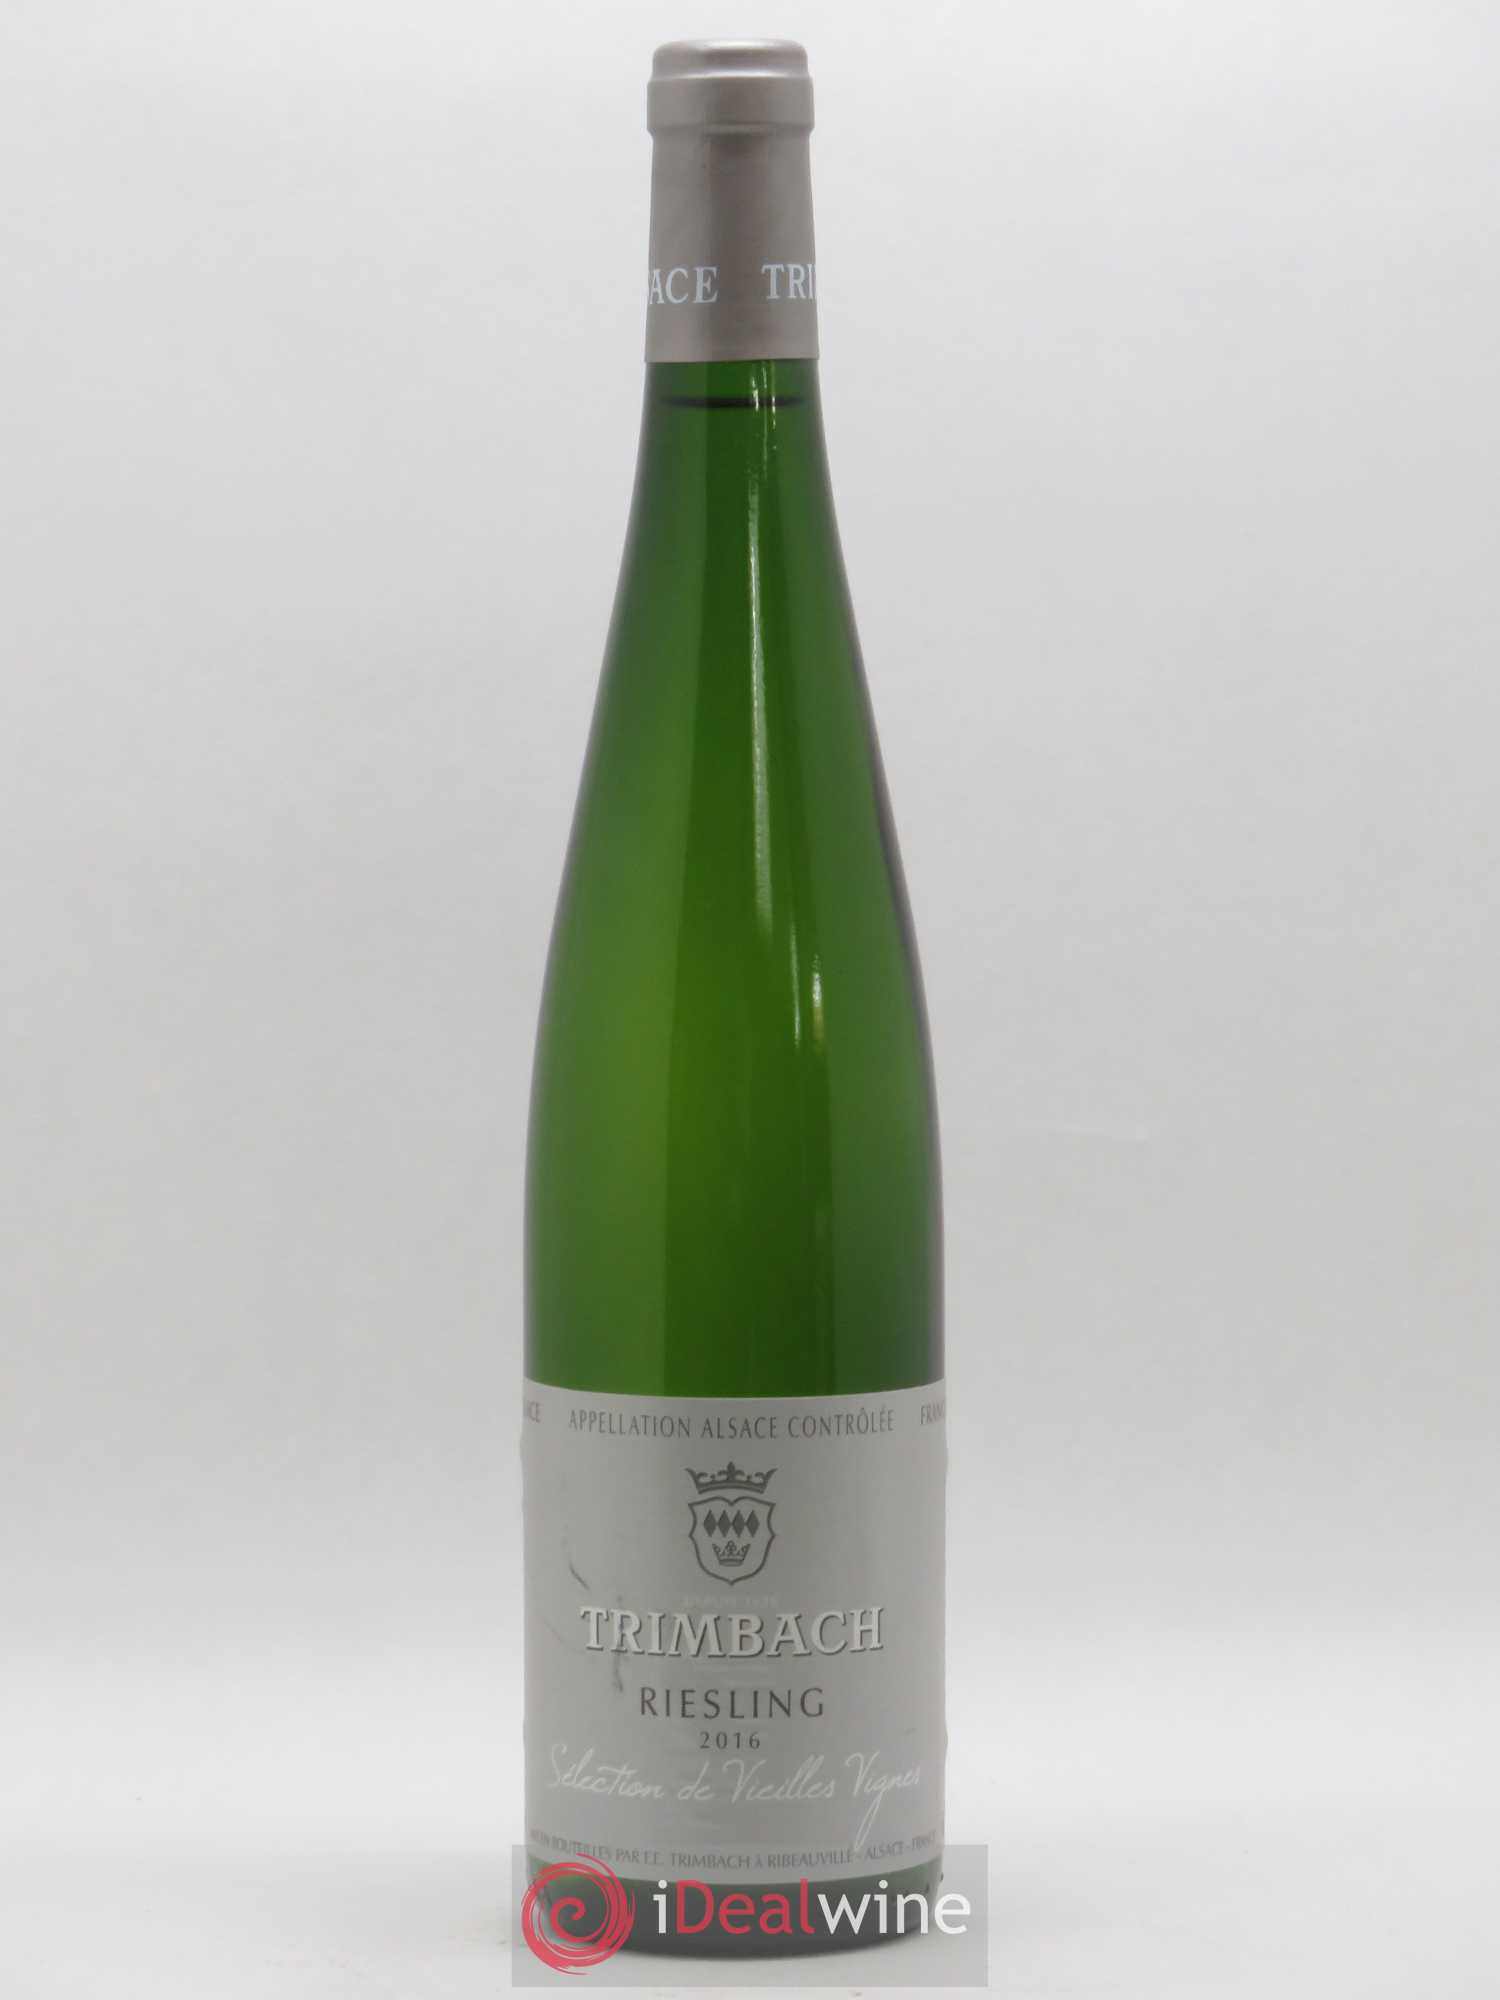 Riesling Sélection de Vieilles Vignes Trimbach (Domaine) (no reserve) 2016 - Lot of 1 Bottle